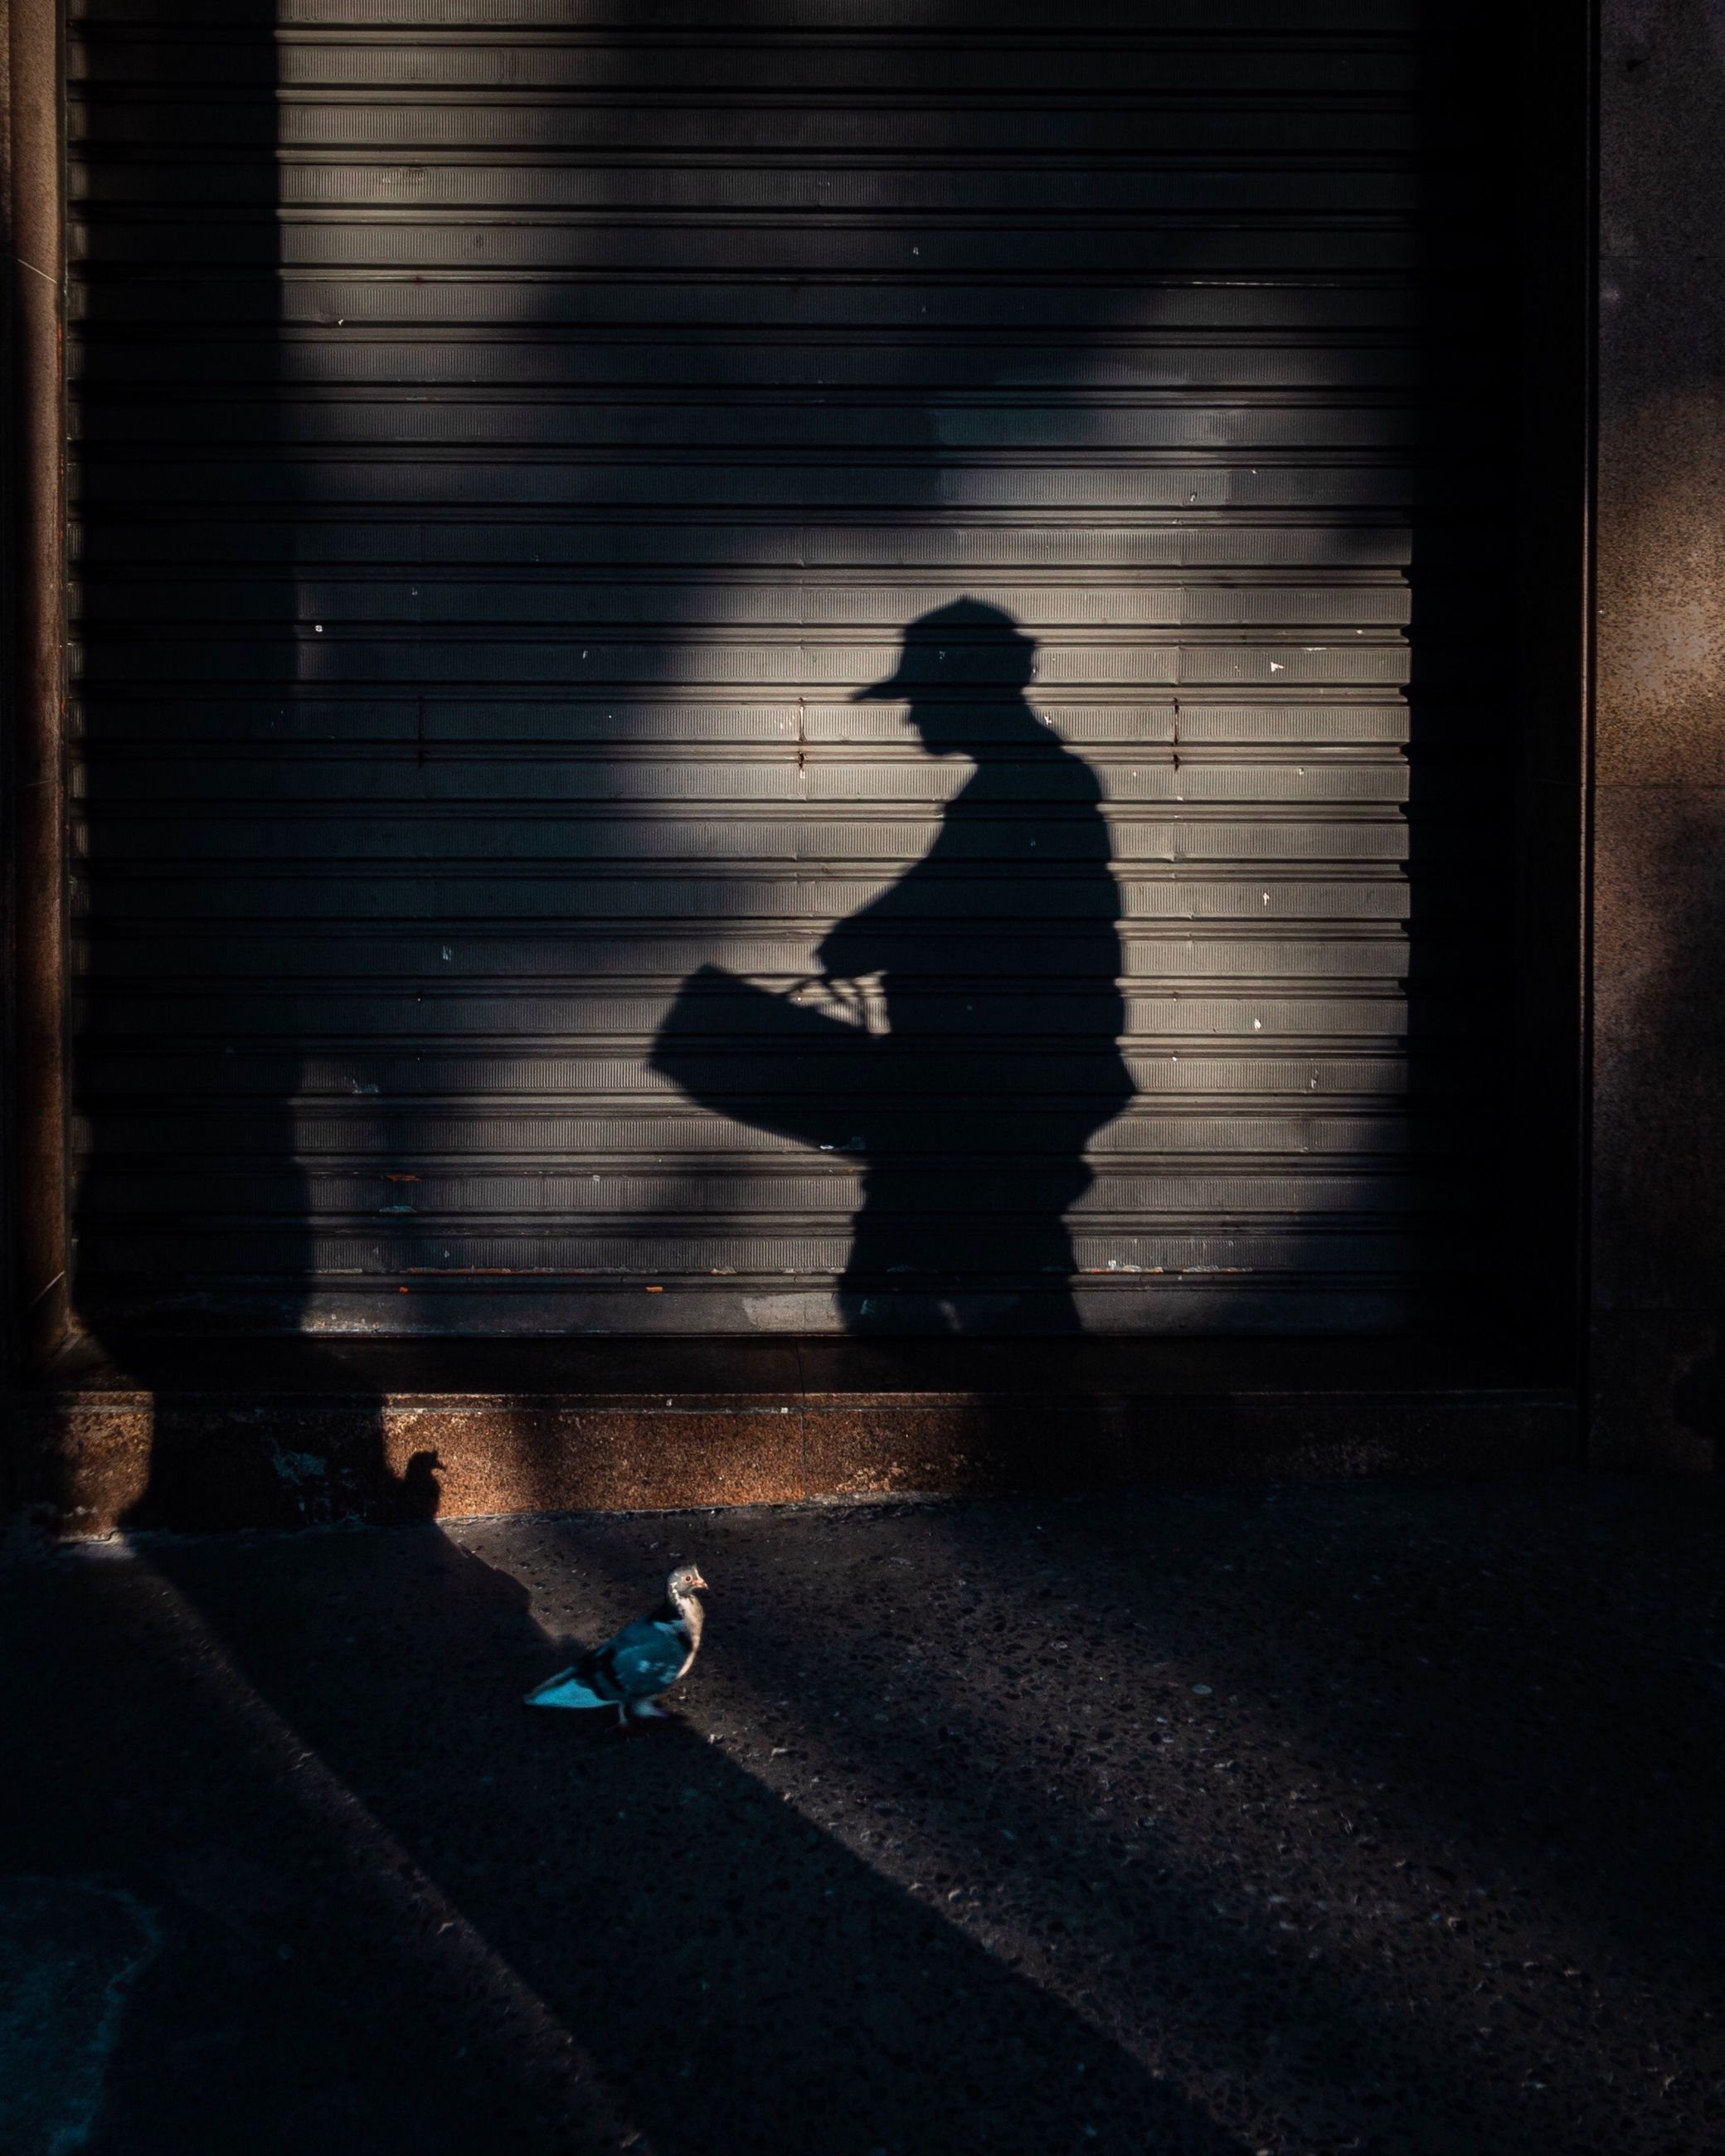 real people, shadow, sunlight, one person, men, full length, city, lifestyles, silhouette, leisure activity, architecture, footpath, shutter, nature, walking, street, outdoors, focus on shadow